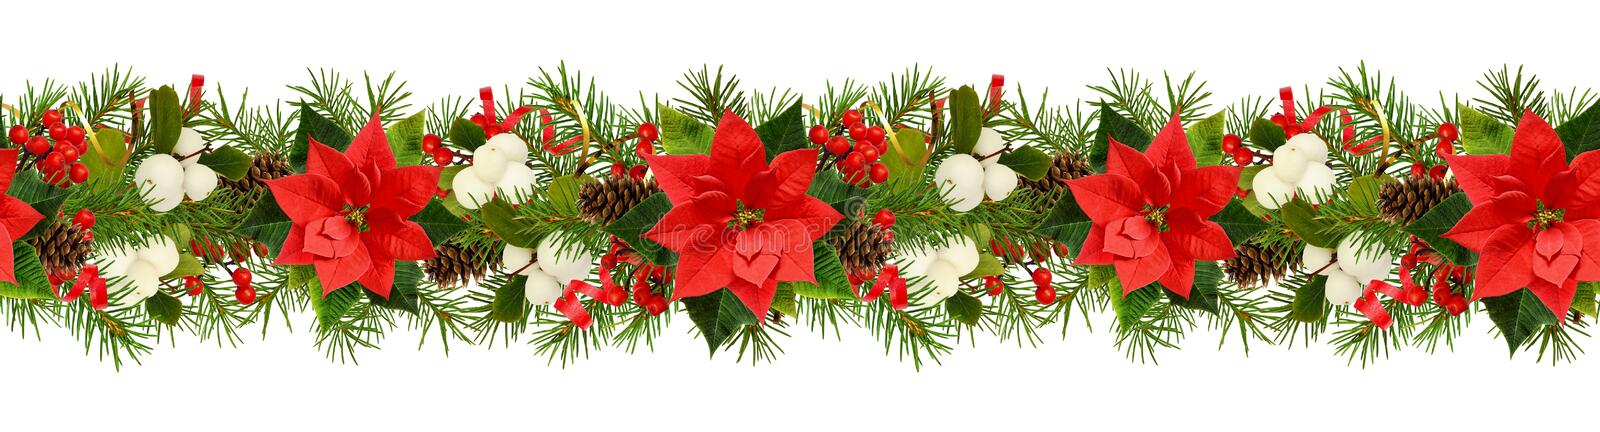 Twigs of Christmas tree, poinsettia flower, berries and holiday decorations in seamless garland stock photo